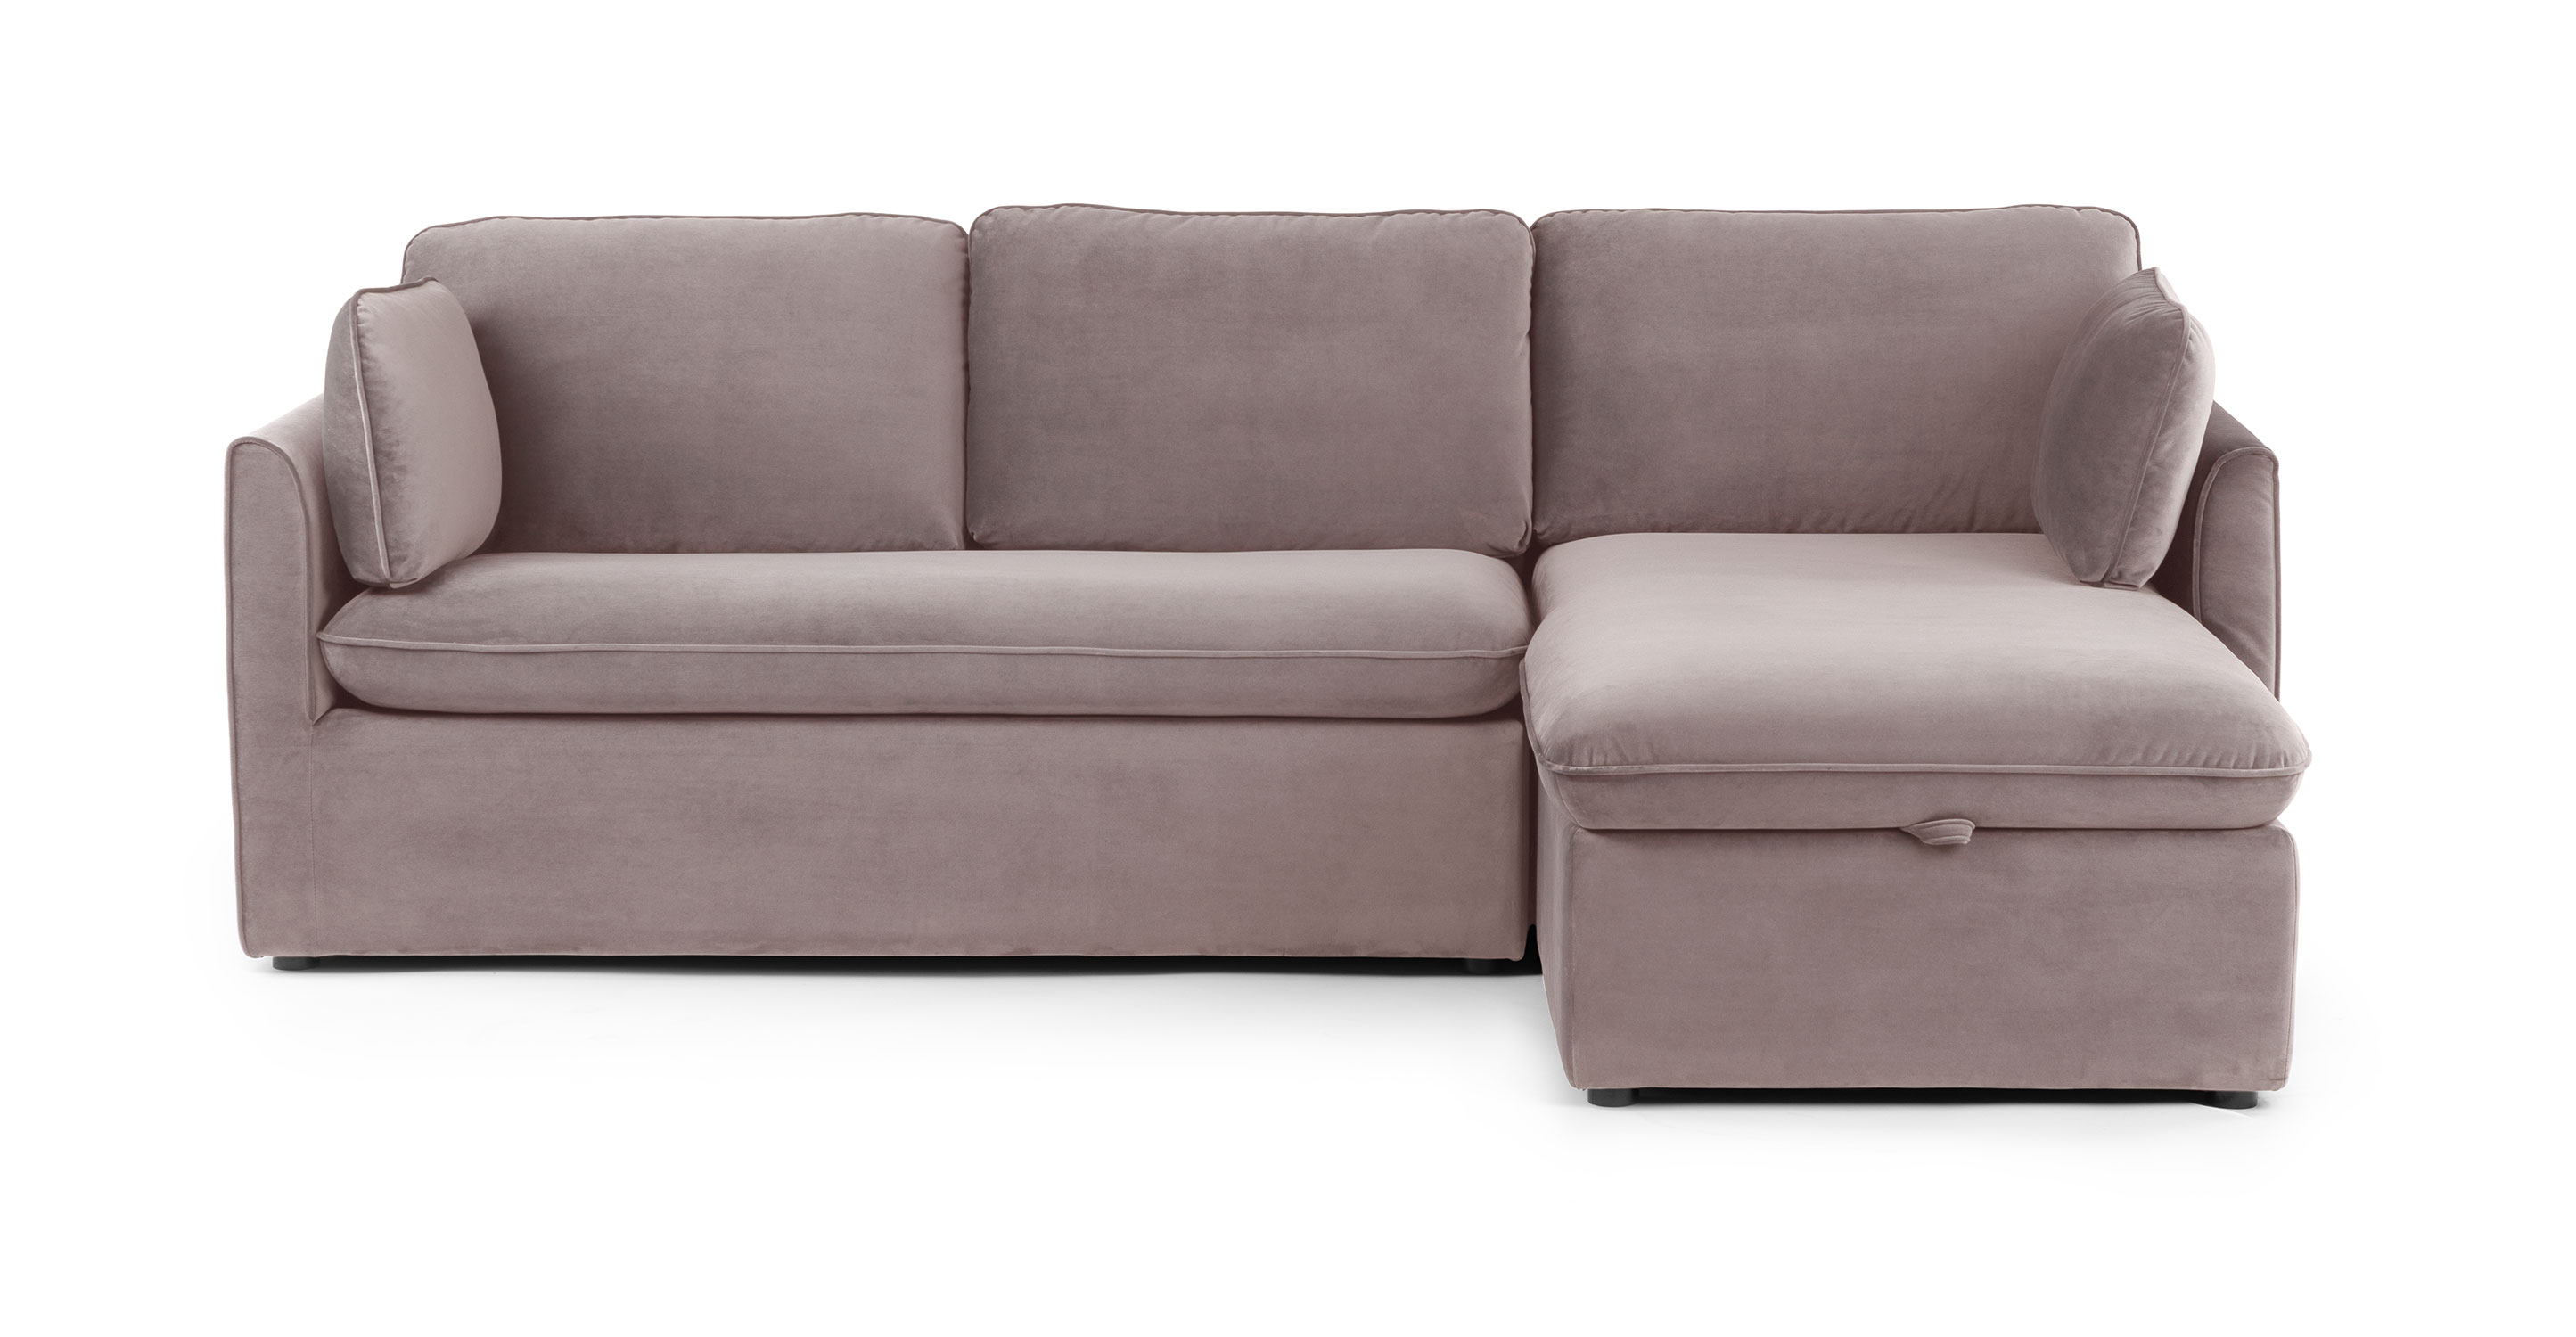 Velvet Sofa Wear And Tear Taupe Velvet Sofa Bed Right Sectional Metal Legs Article Oneira Modern Furniture